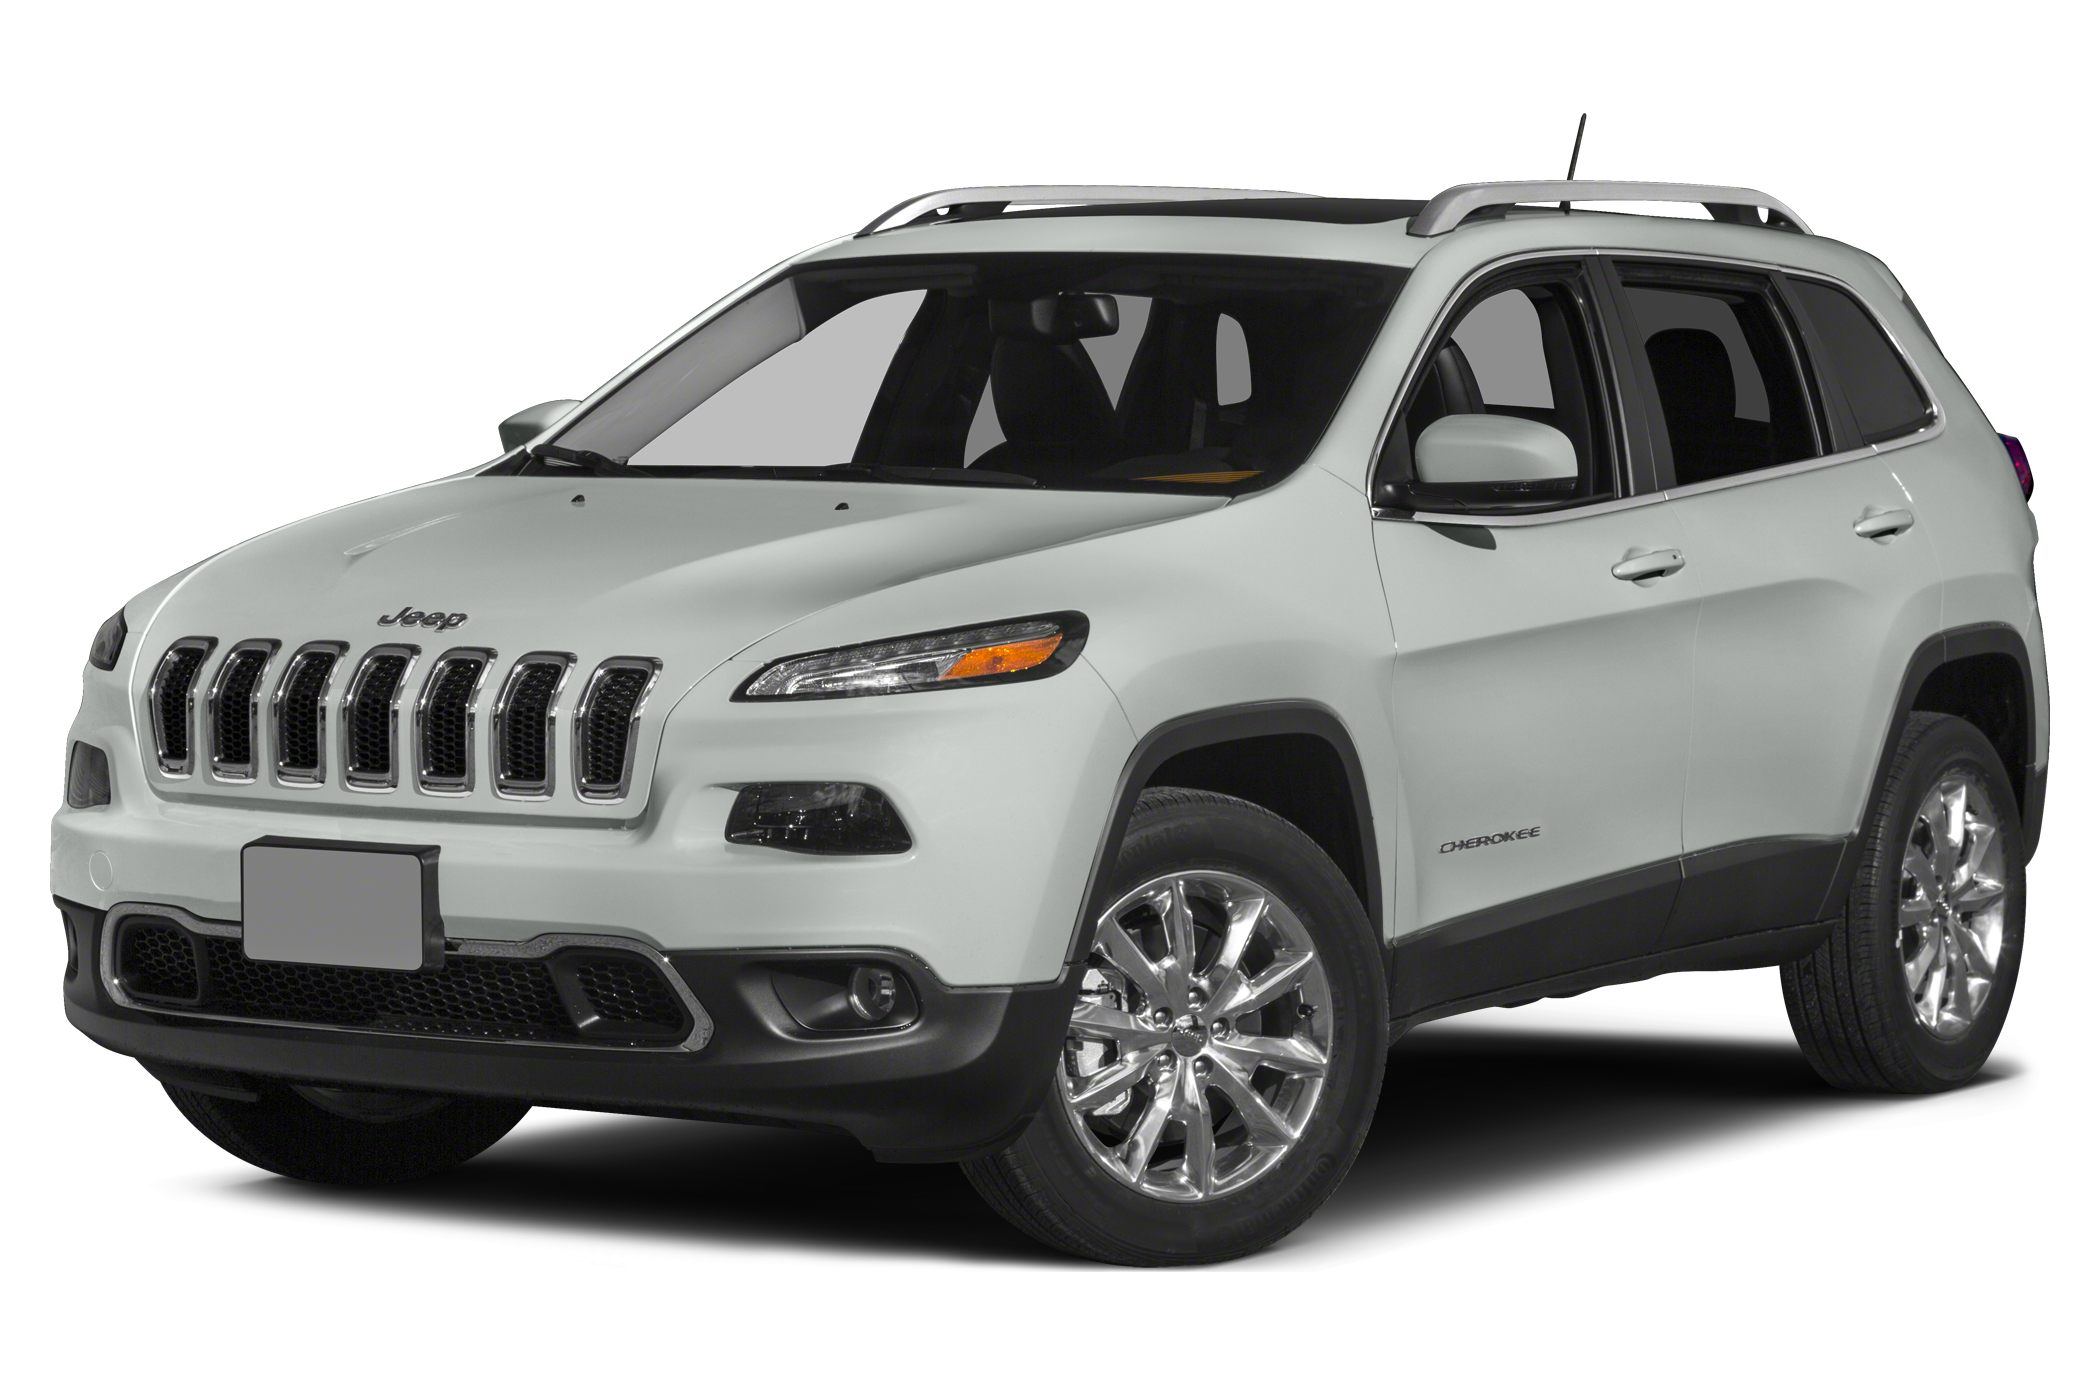 2015 Jeep Cherokee Latitude SUV for sale in Atlanta for $33,288 with 5 miles